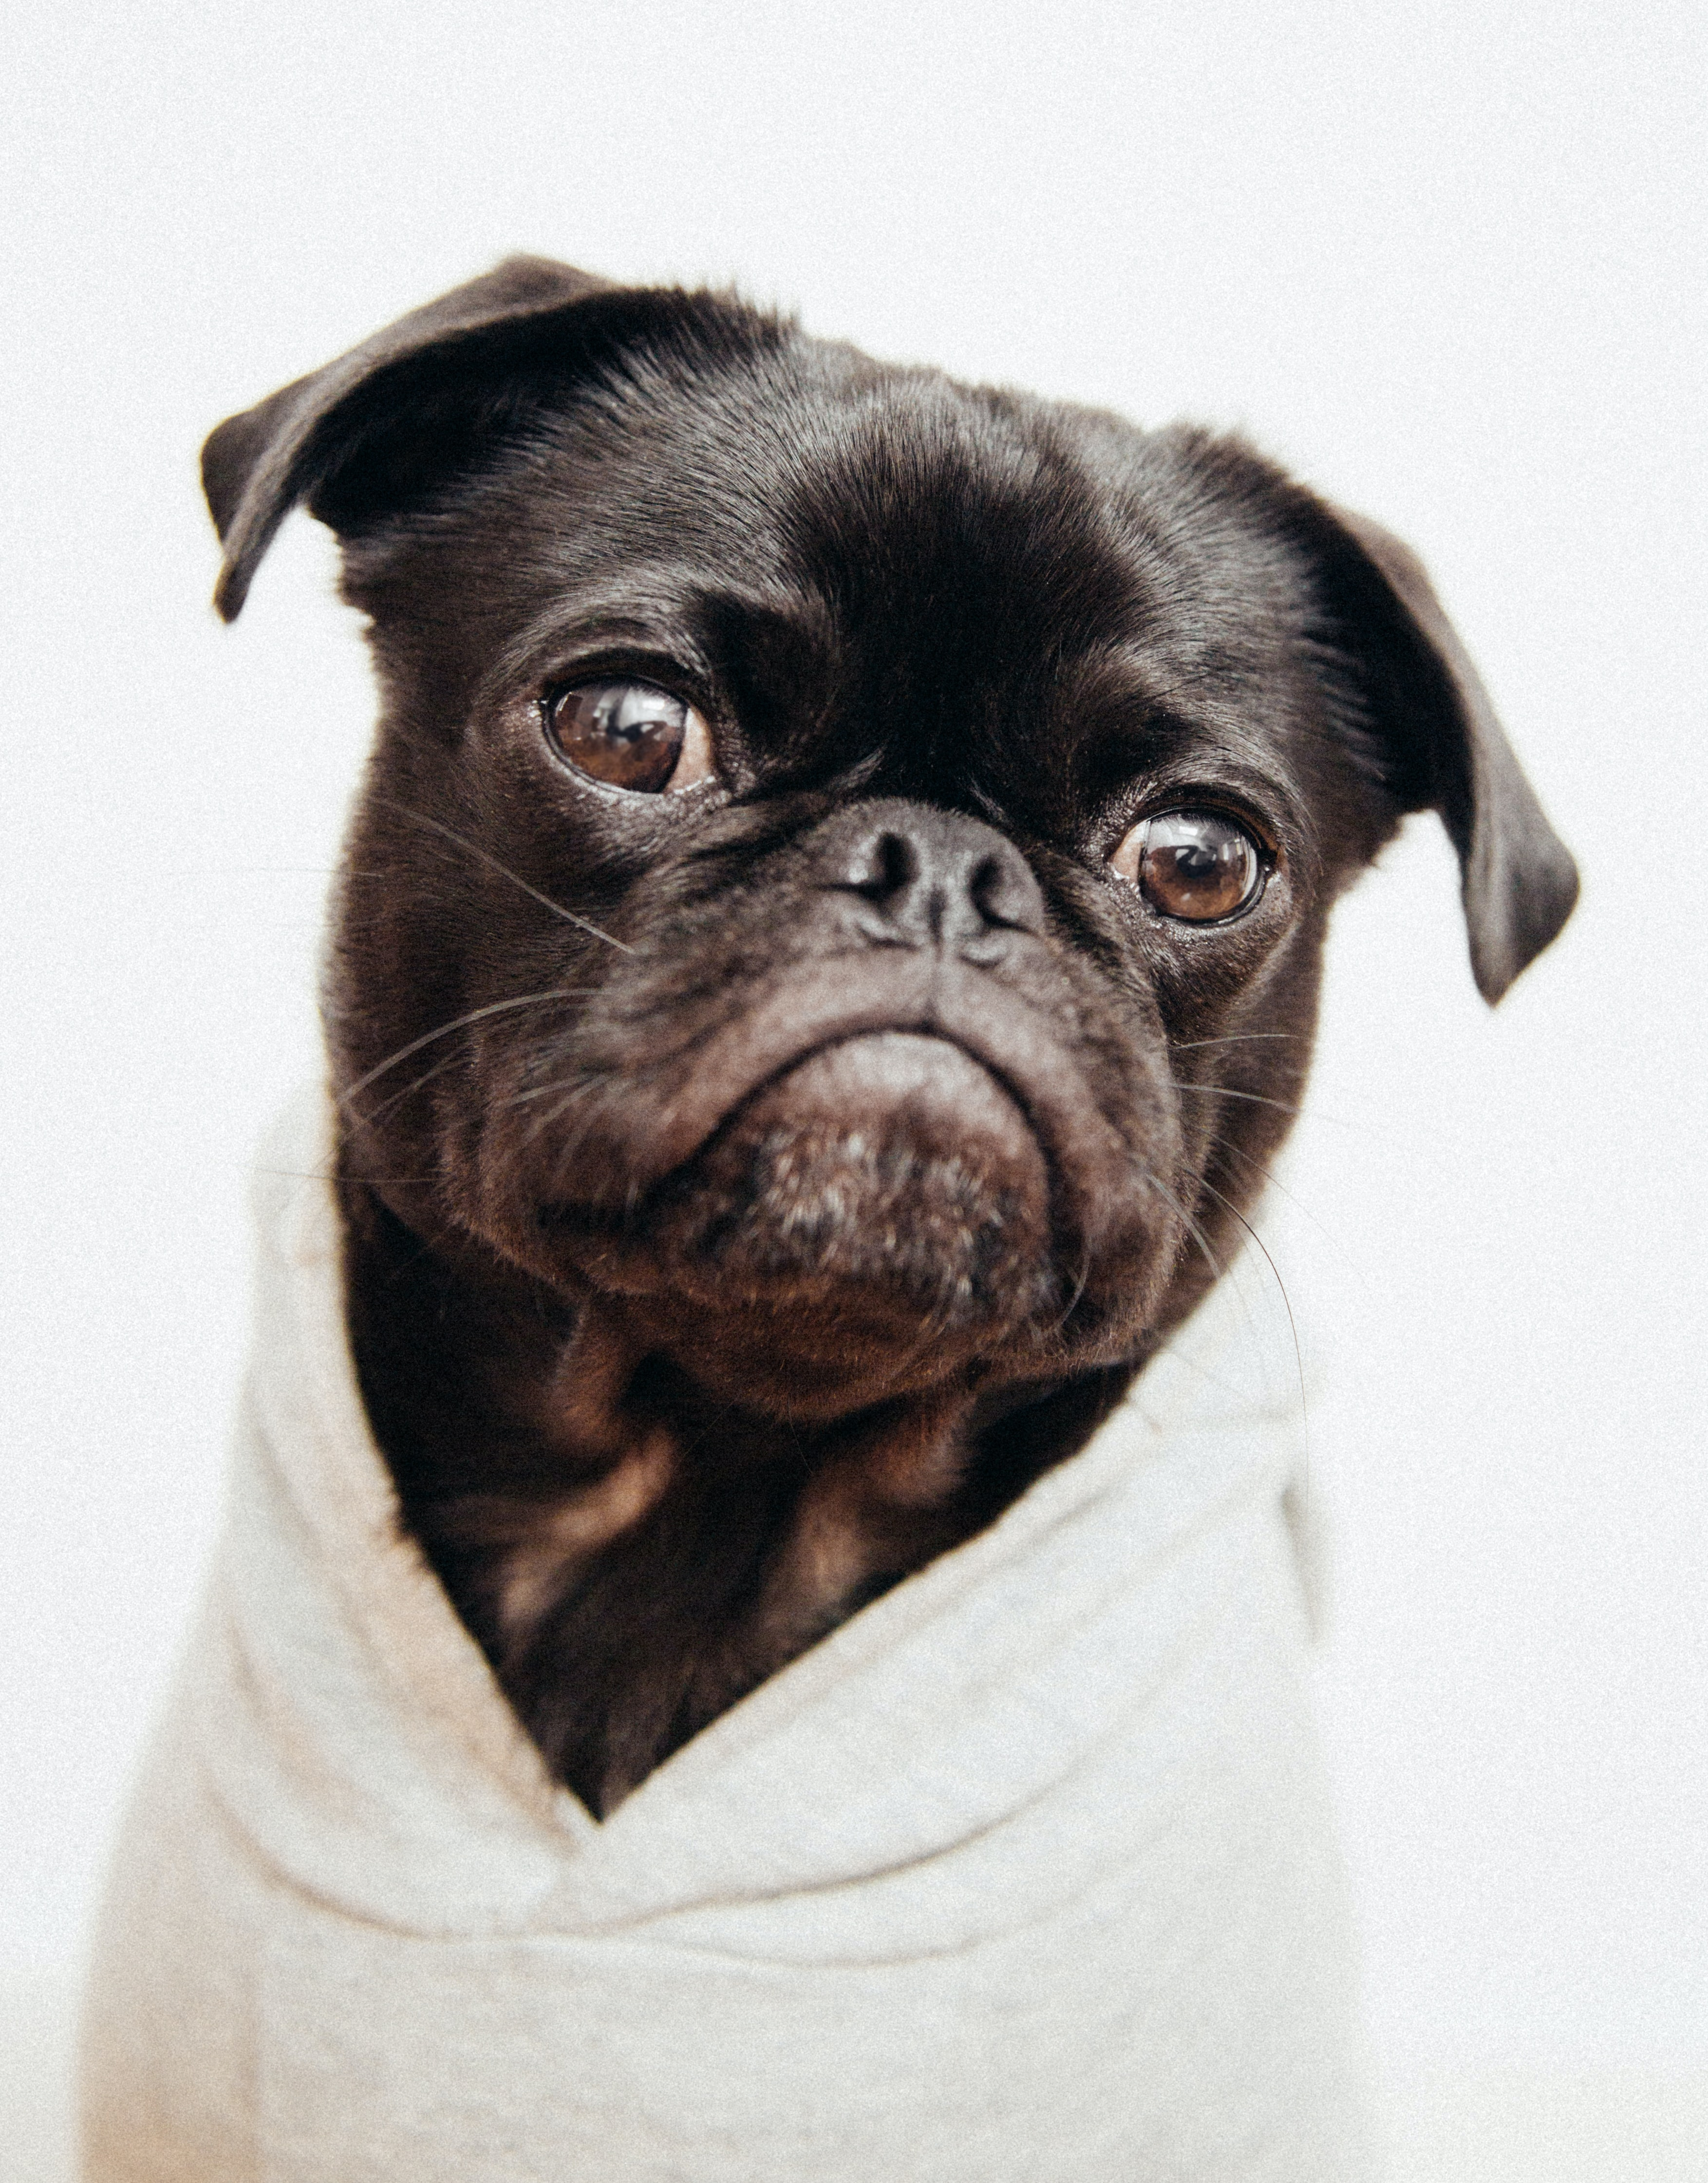 close-up photo of black pug